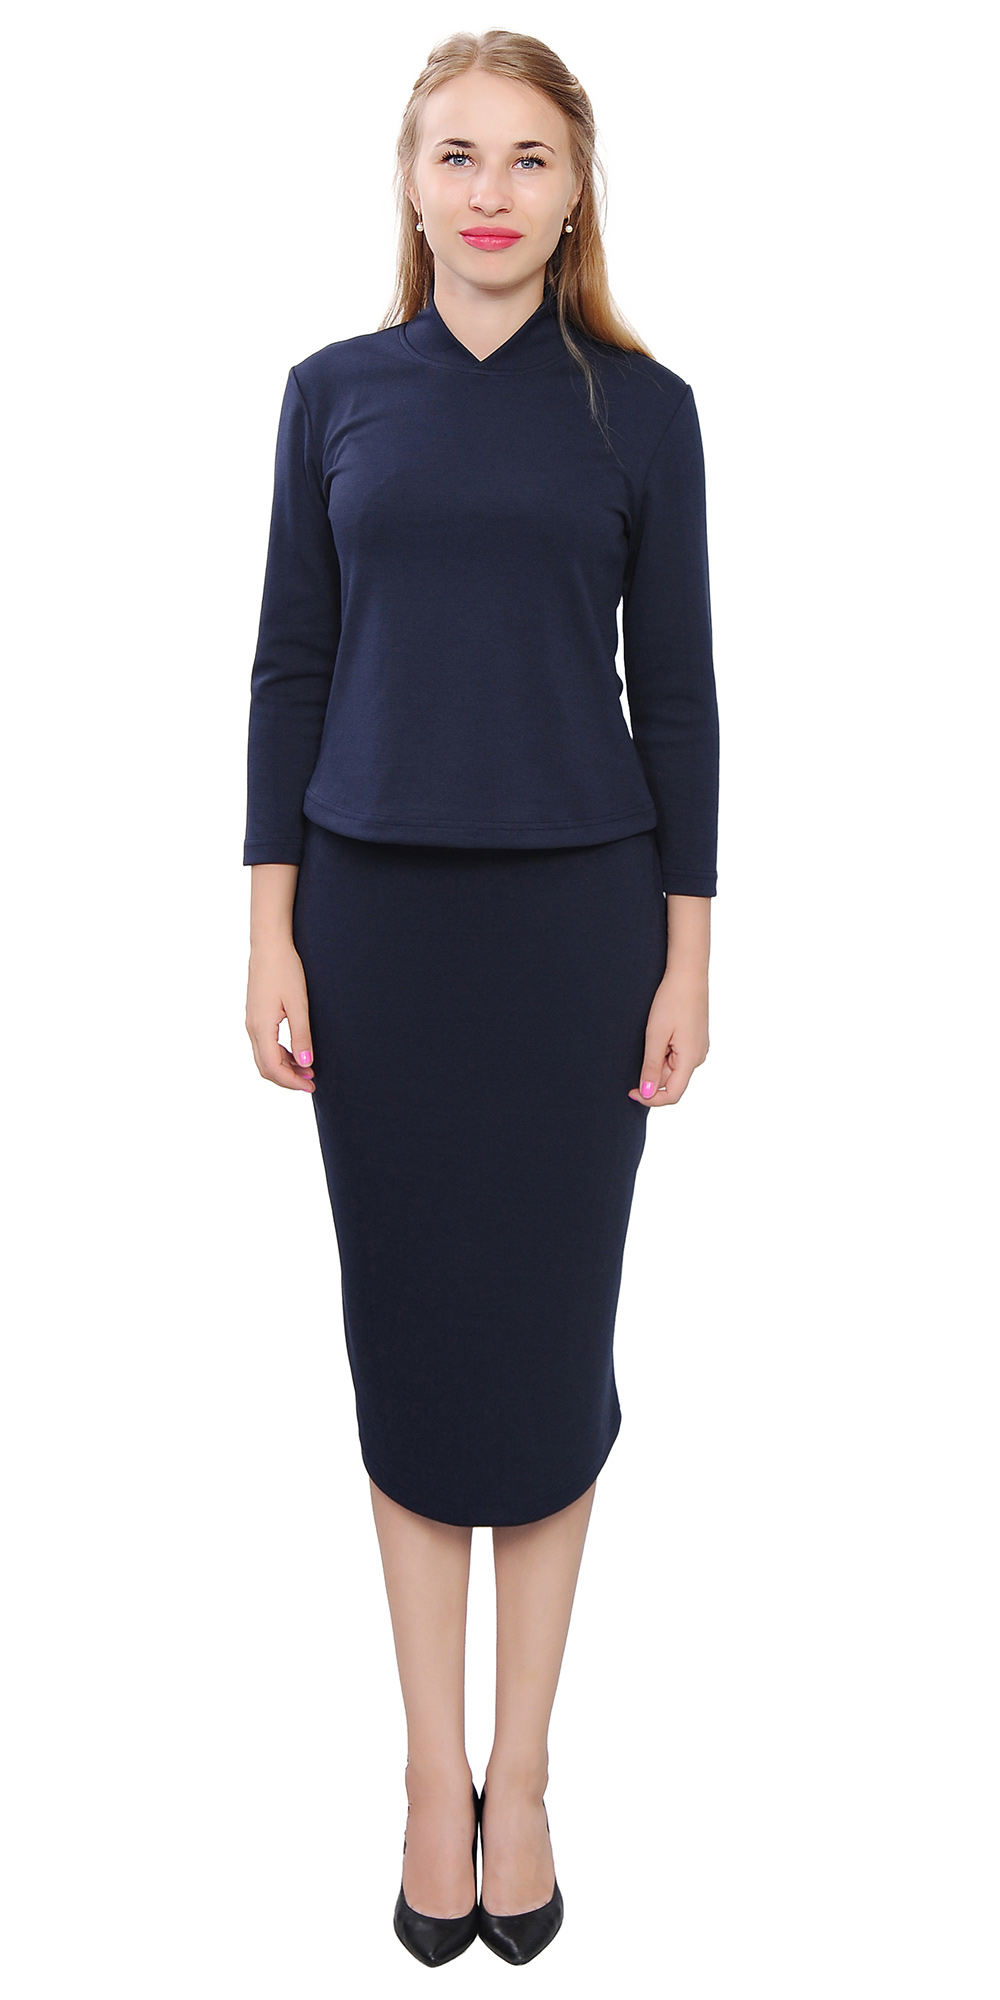 marycrafts s fitted bodycon pencil work office